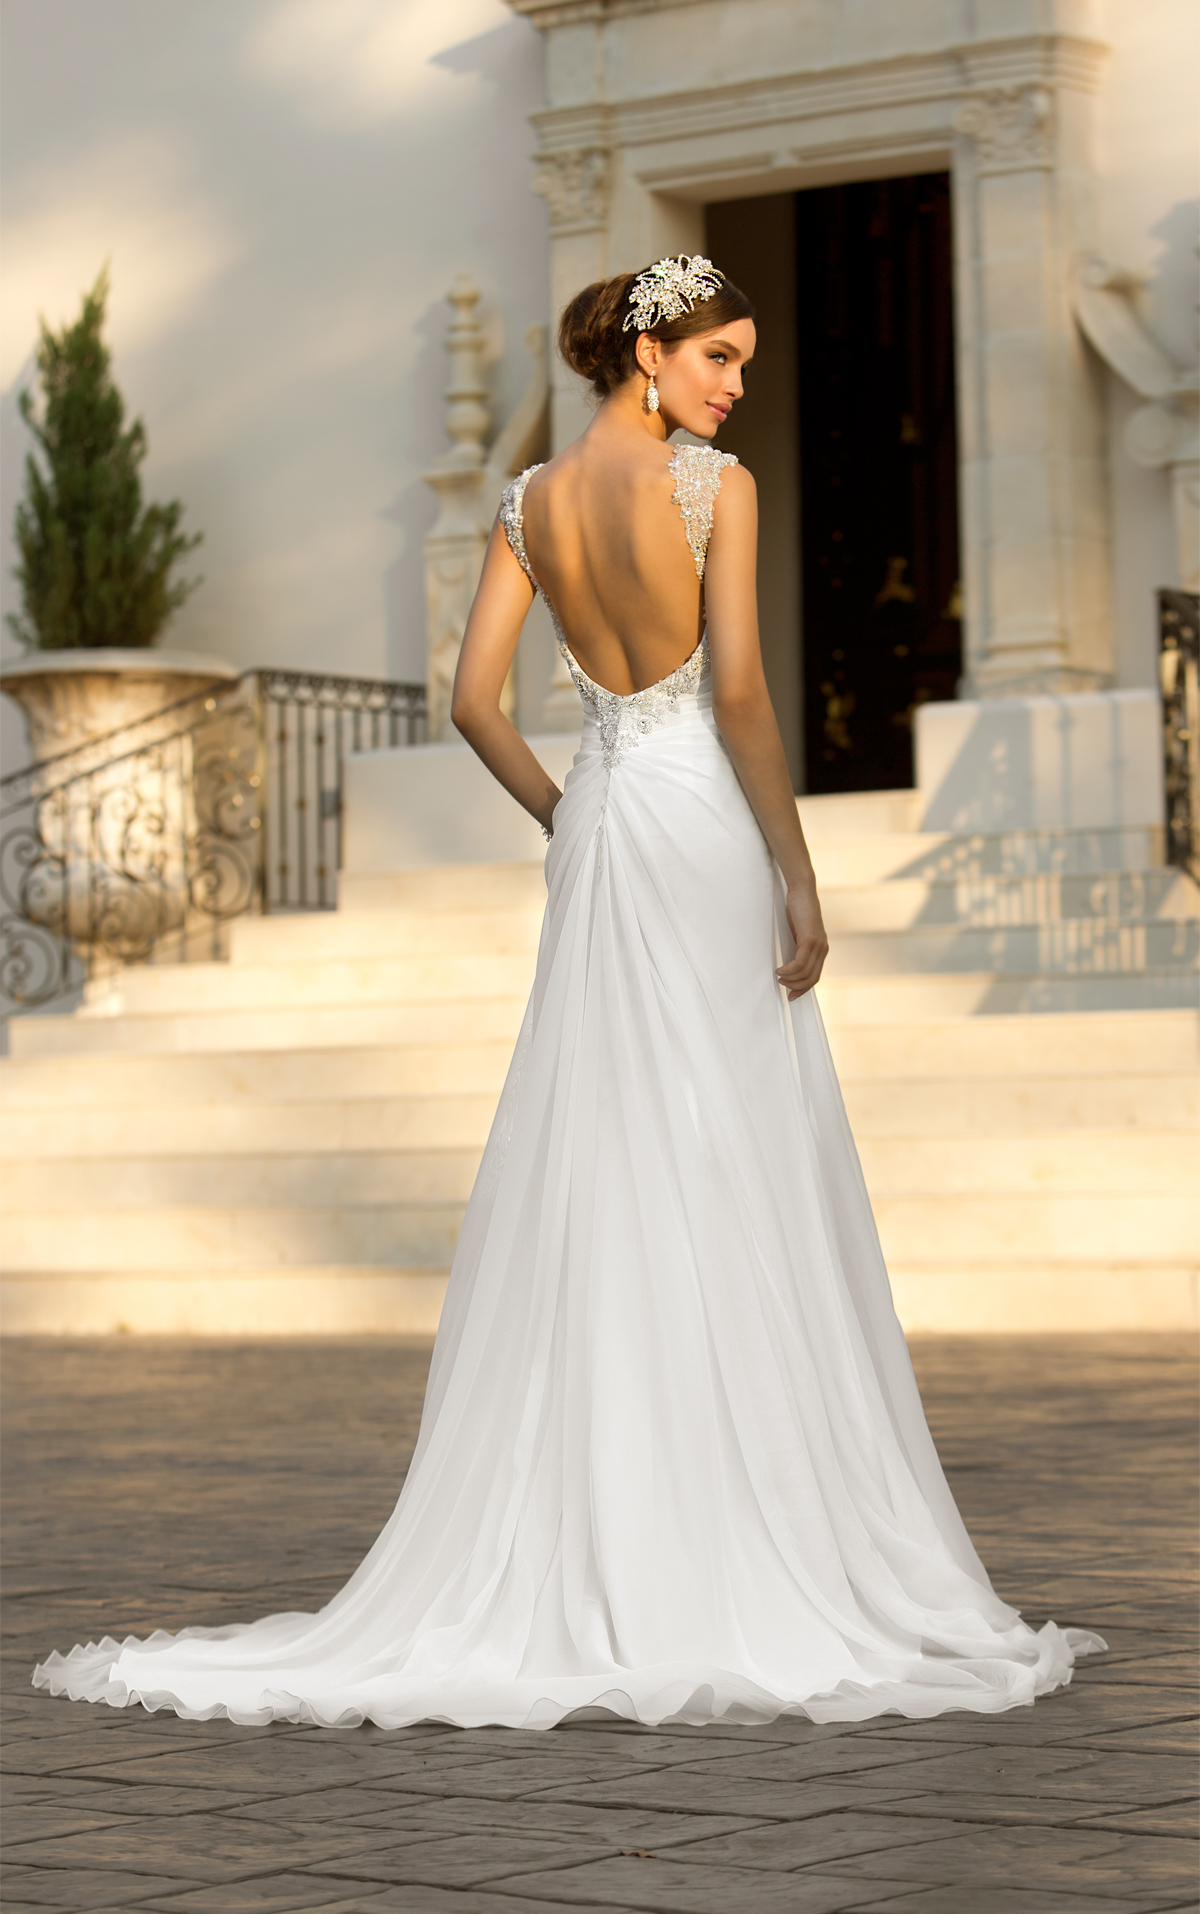 Glamorous Stella York Wedding Dresses 2014 Collection. Off The Shoulder Lace Trumpet Wedding Dress. Rustic Bridesmaid Dresses With Lace. Stunning Wedding Dresses With Bling. Wedding Dress Empire Line Chiffon. Black Gothic Wedding Dresses Uk. Big Wedding Dresses Uk. Wedding Dresses 2015 Mermaid With Bling. Wedding Guest Dresses Vintage Style